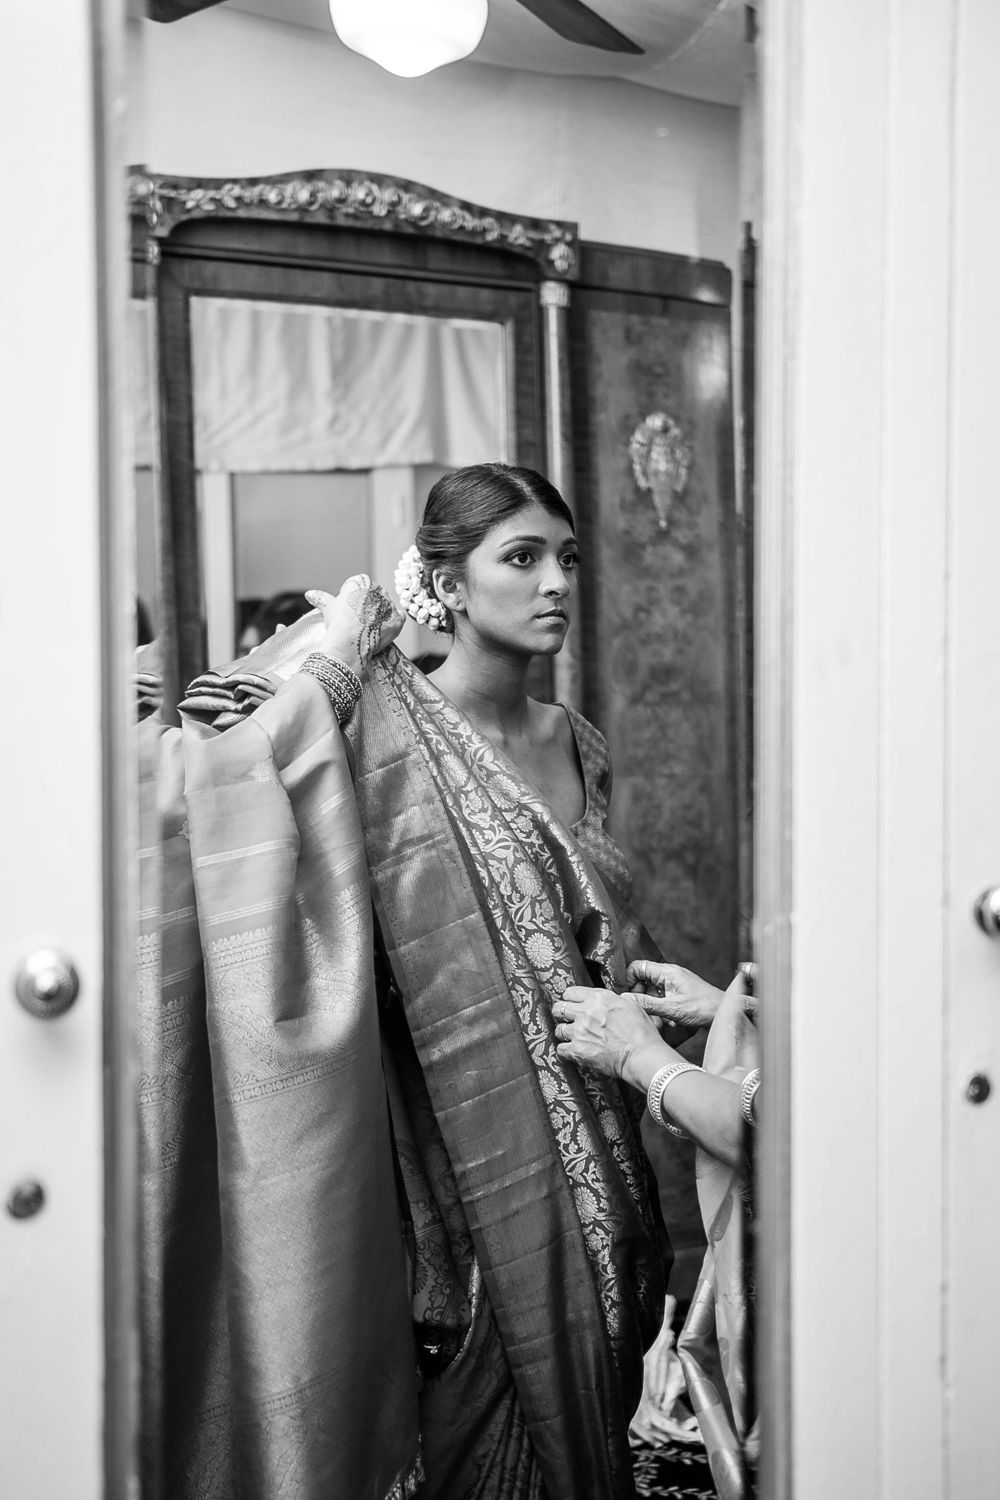 rebecca skidgel photography grand island mansion indian wedding bride getting ready looking in mirror